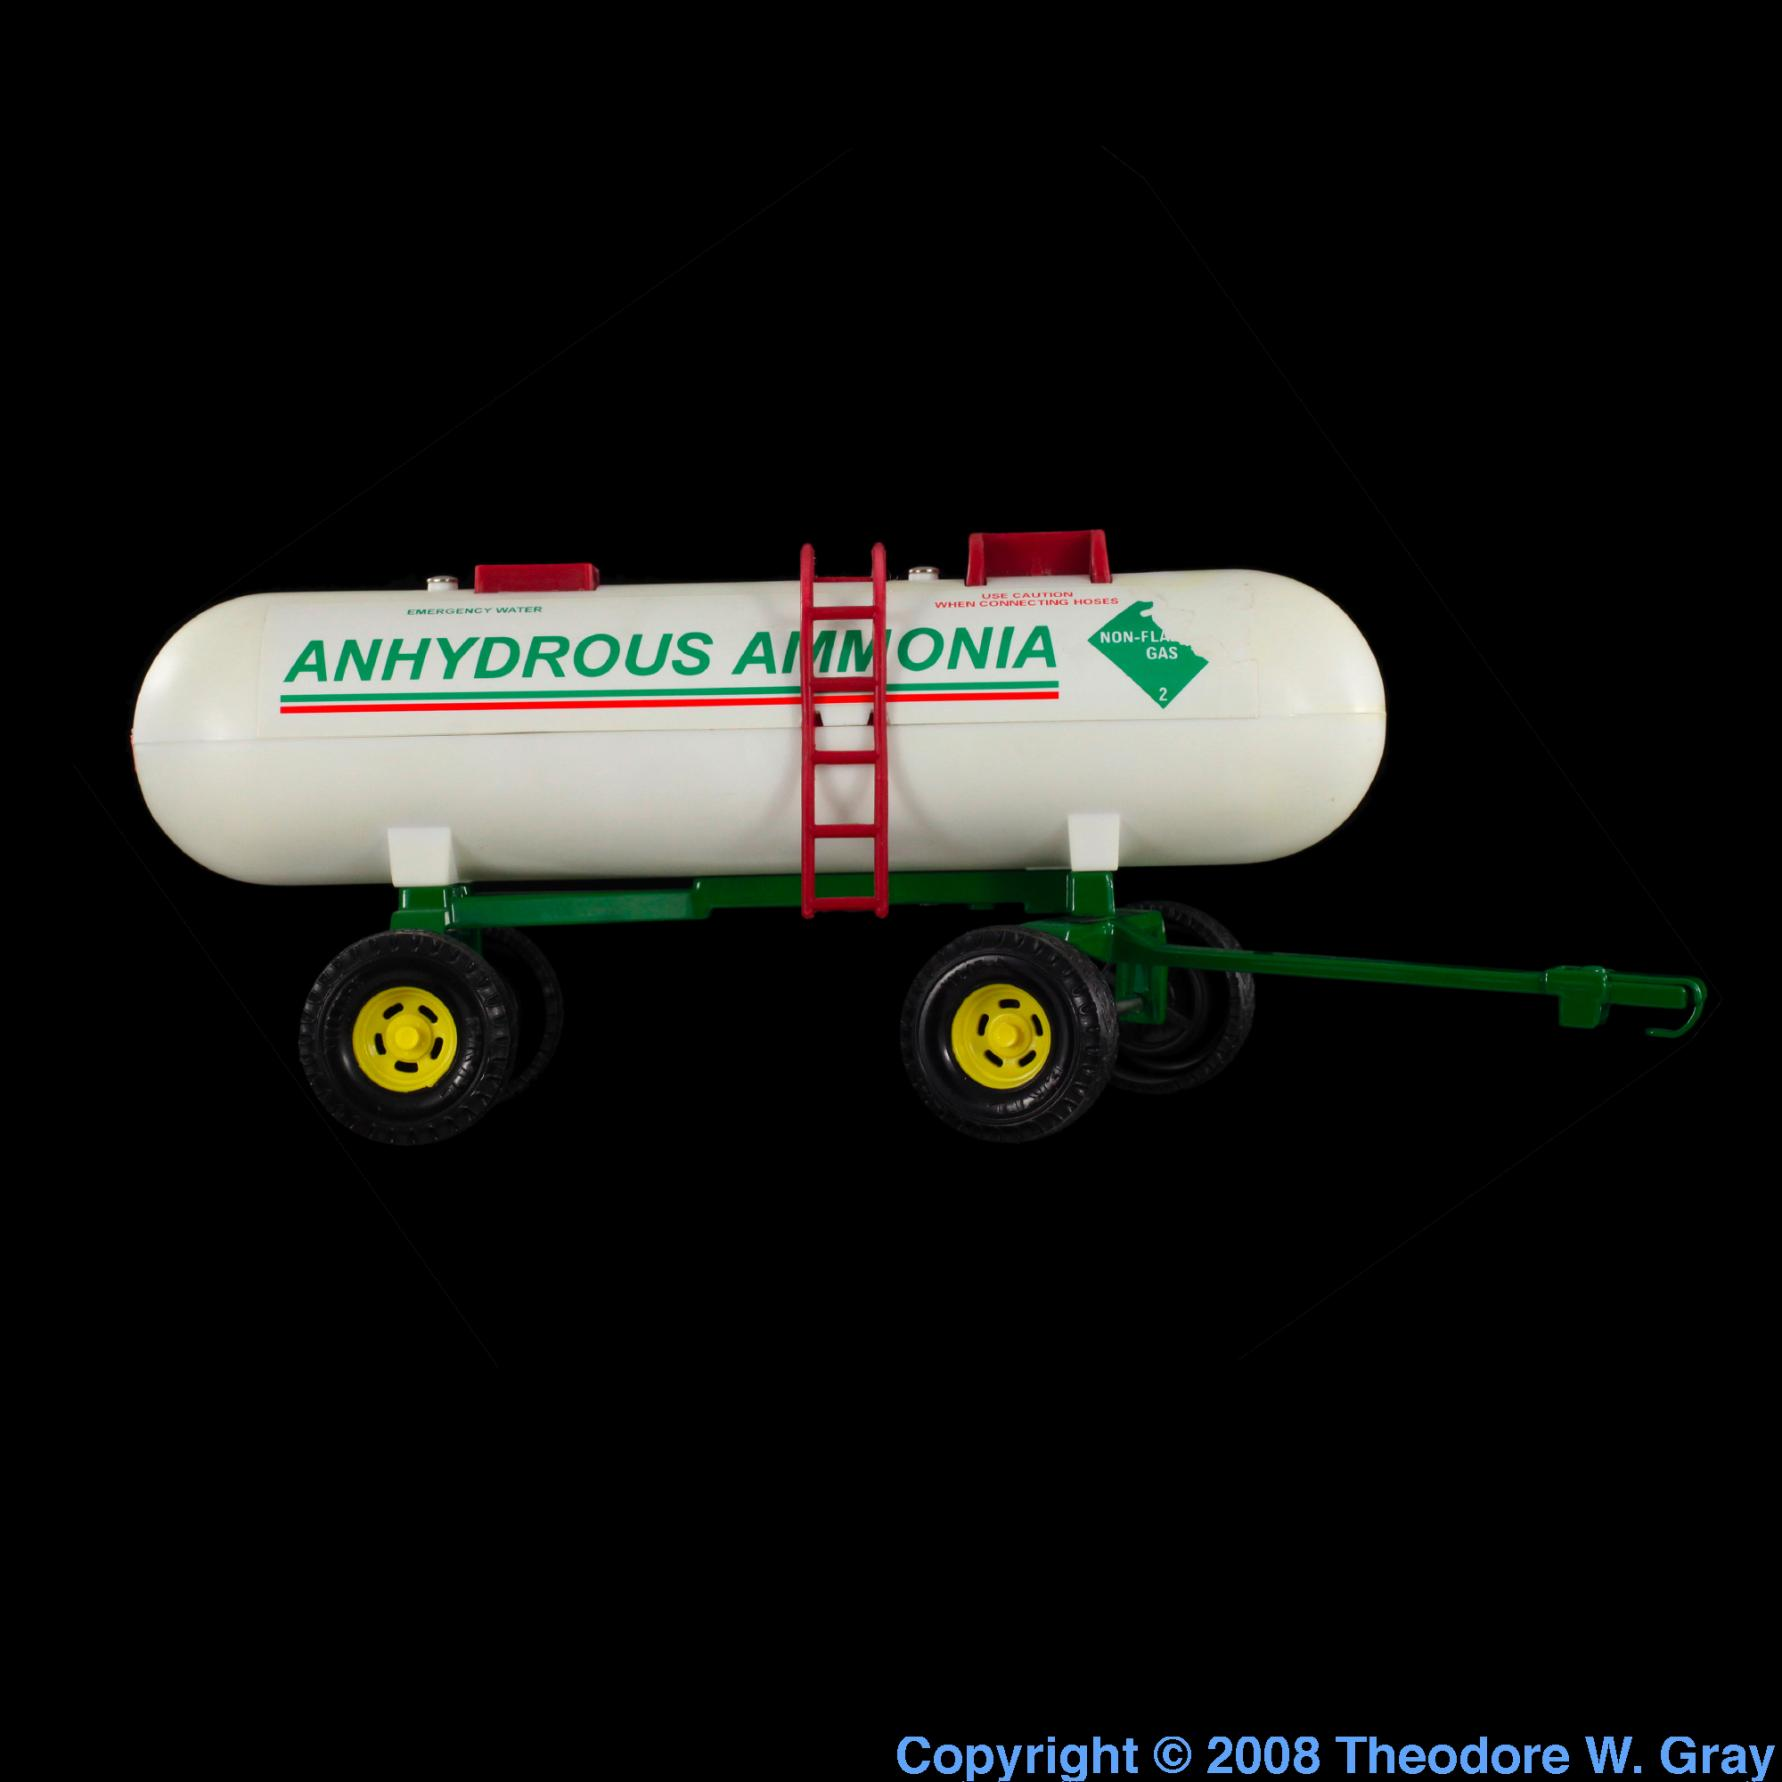 How does anhydrous ammonia create more available nitrogen for plants?